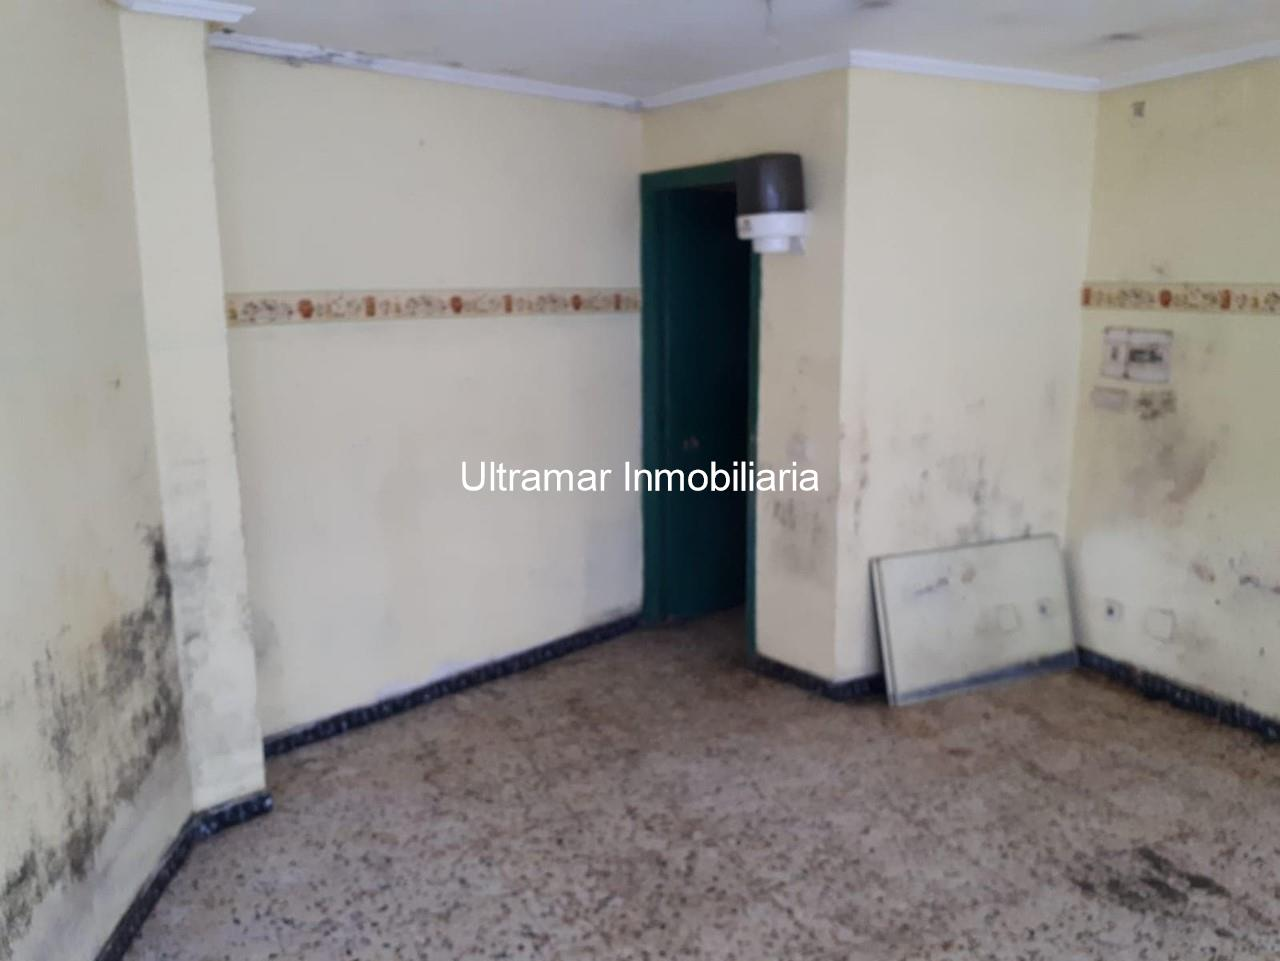 Foto 4 Local comercial en venta en Ultramar